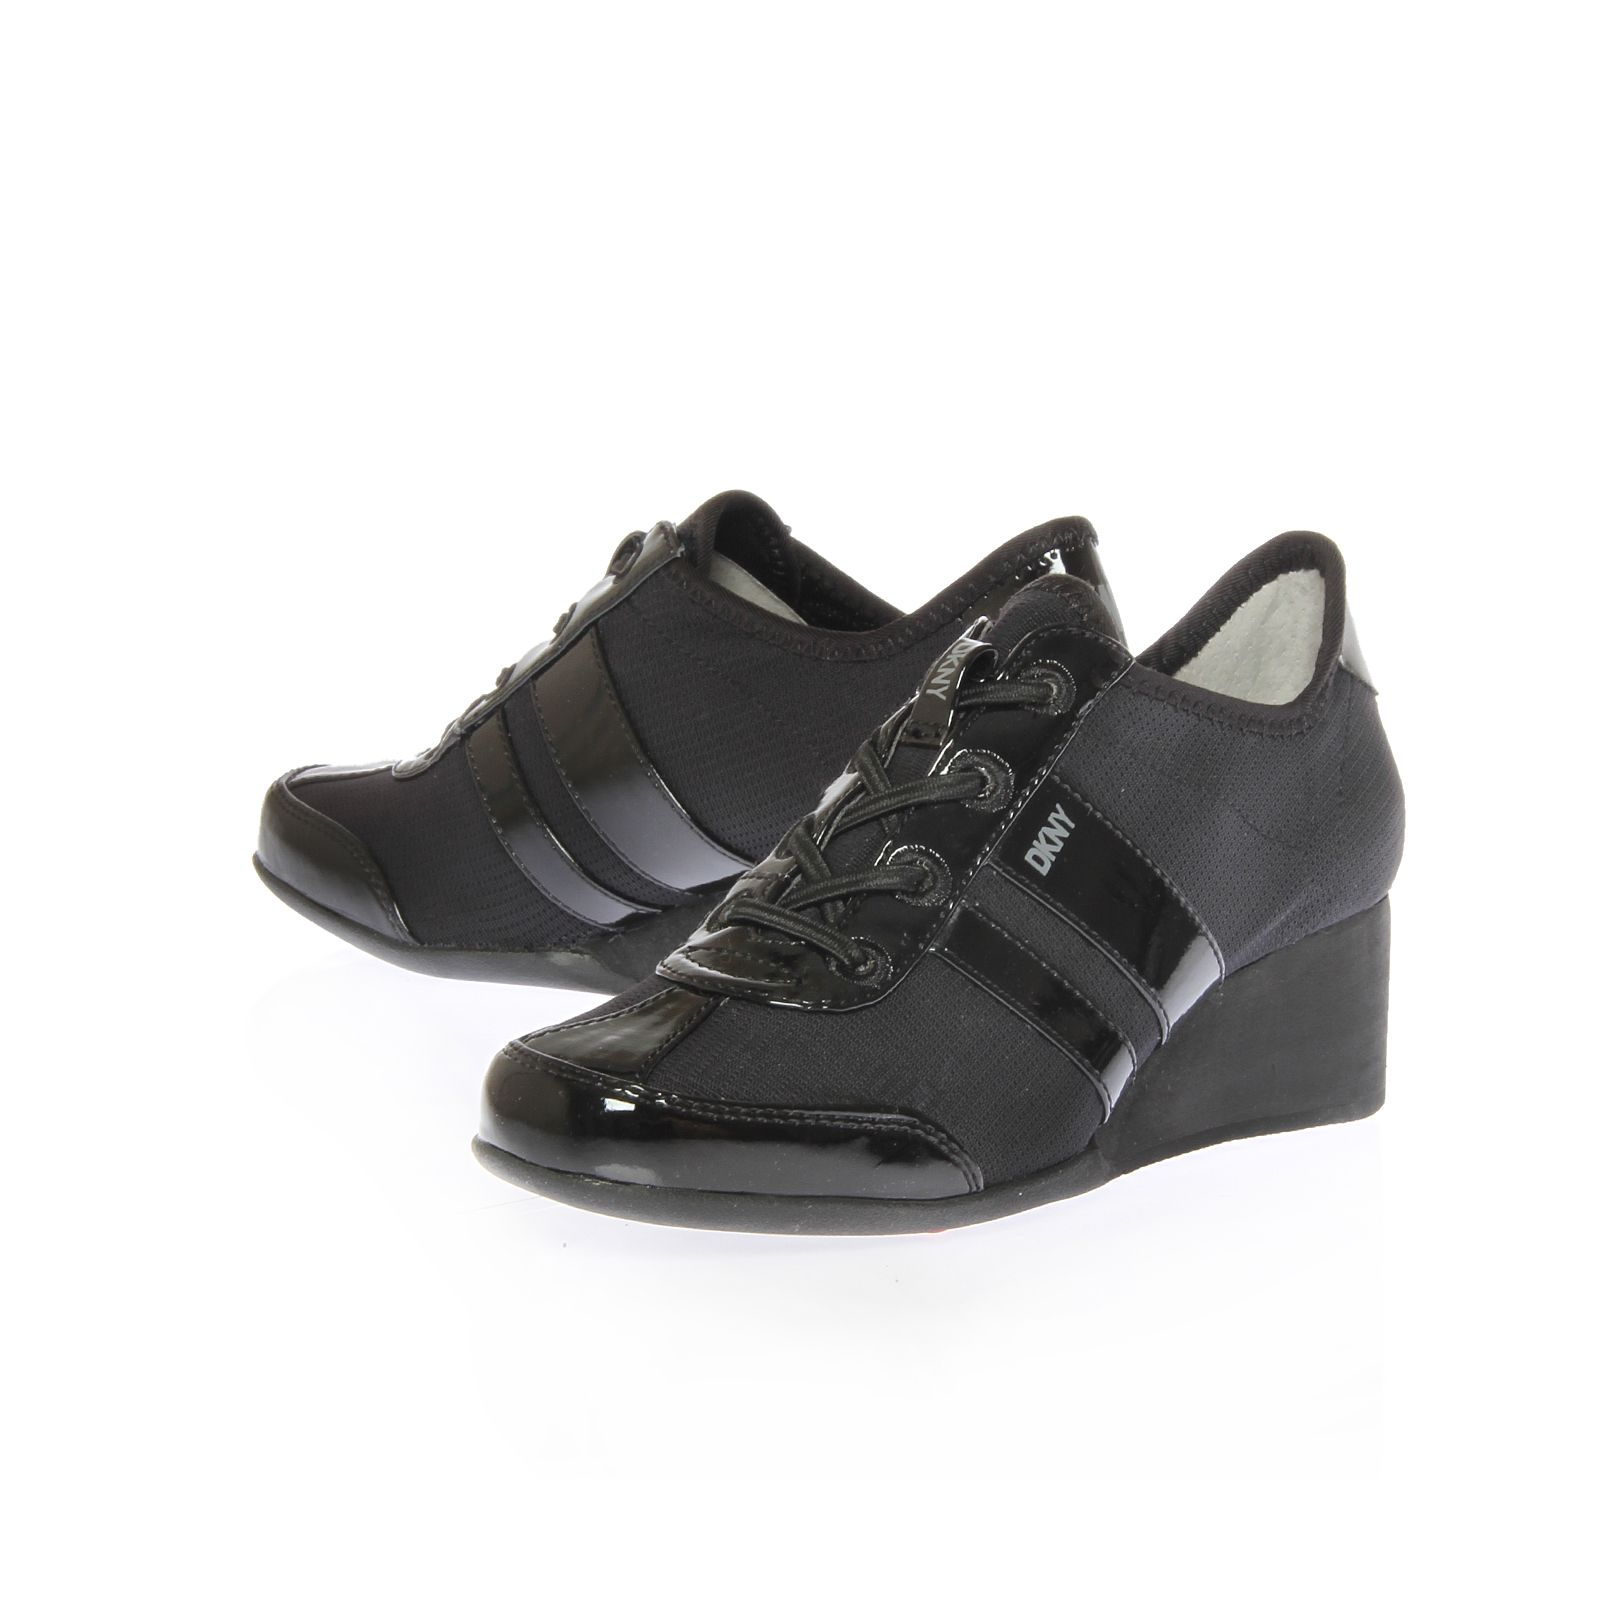 dkny raina lace up wedge trainer shoes in black